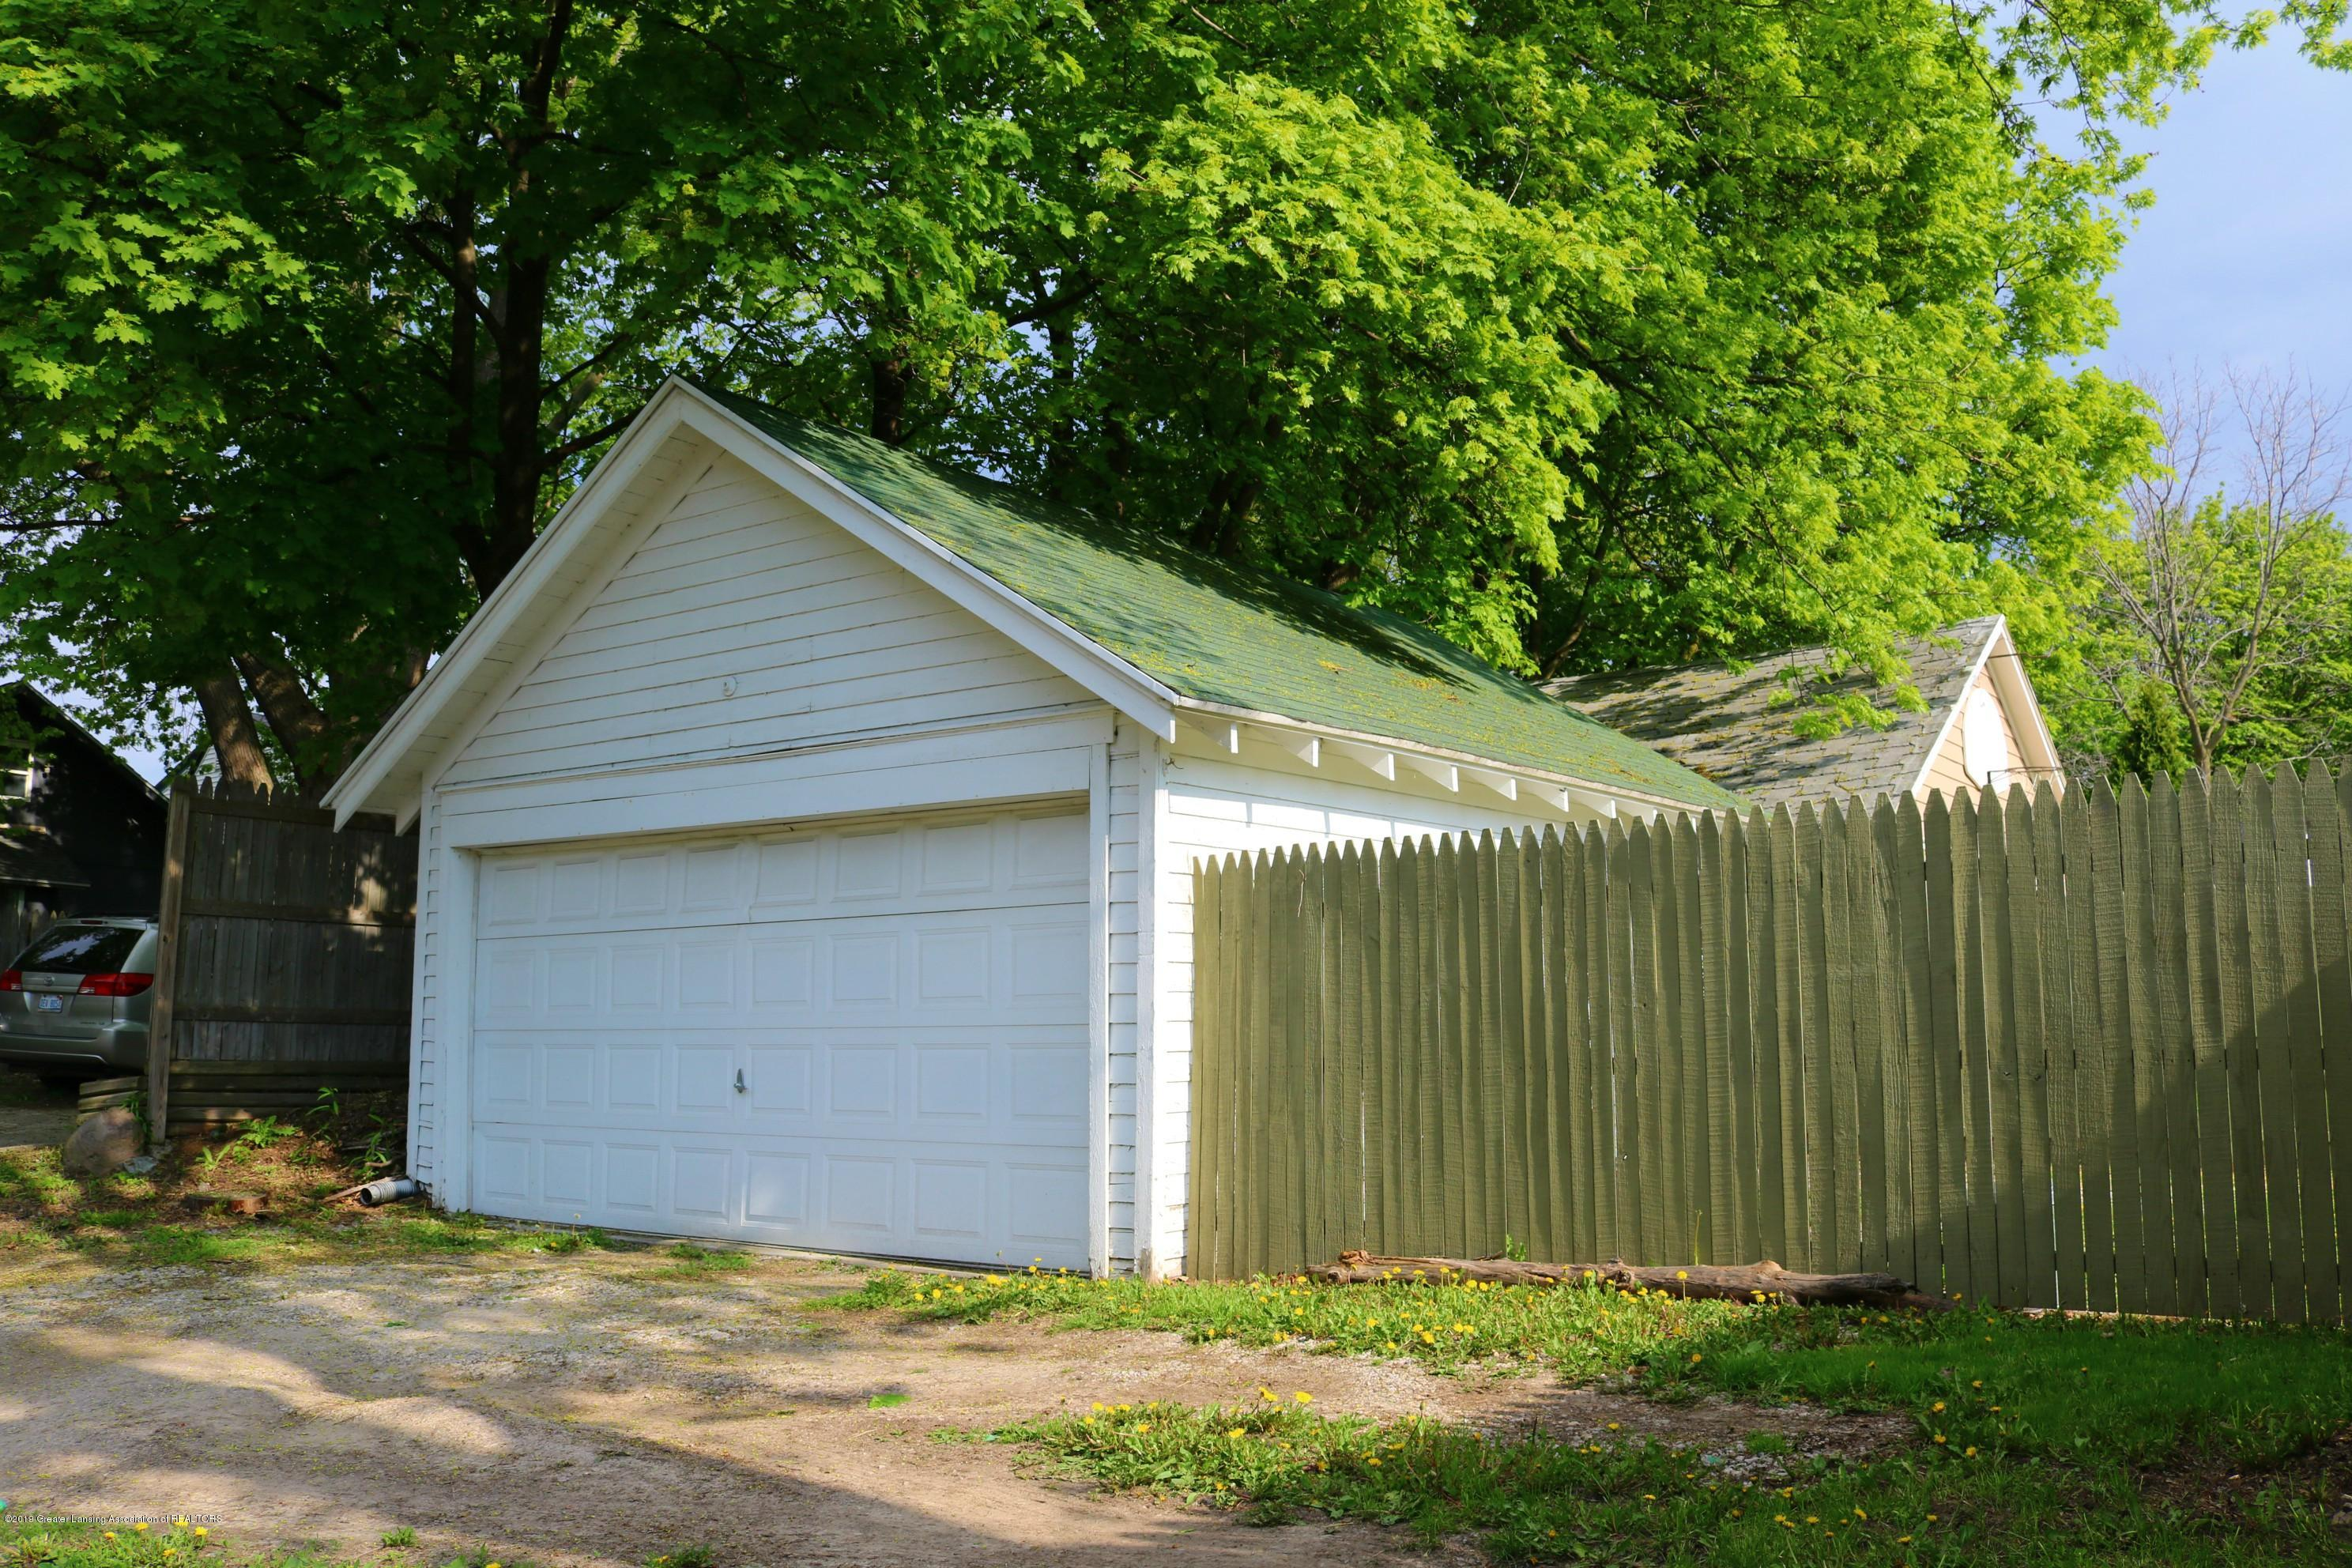 703 N Magnolia Ave - Garage - 18